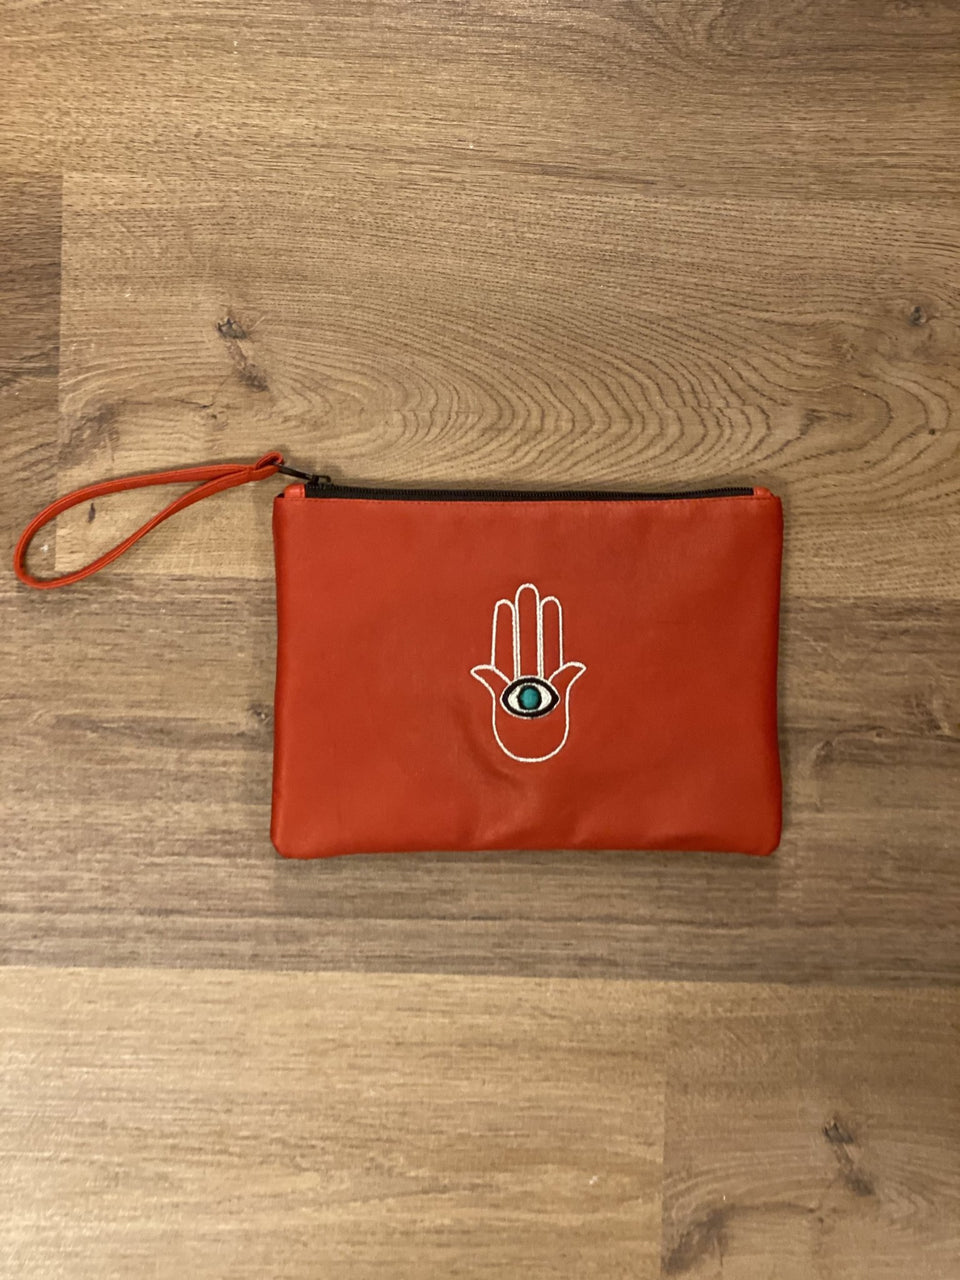 COLLAB NH HAND - MINE BAGS AND ACCESSORIES - MIRA Y MANO